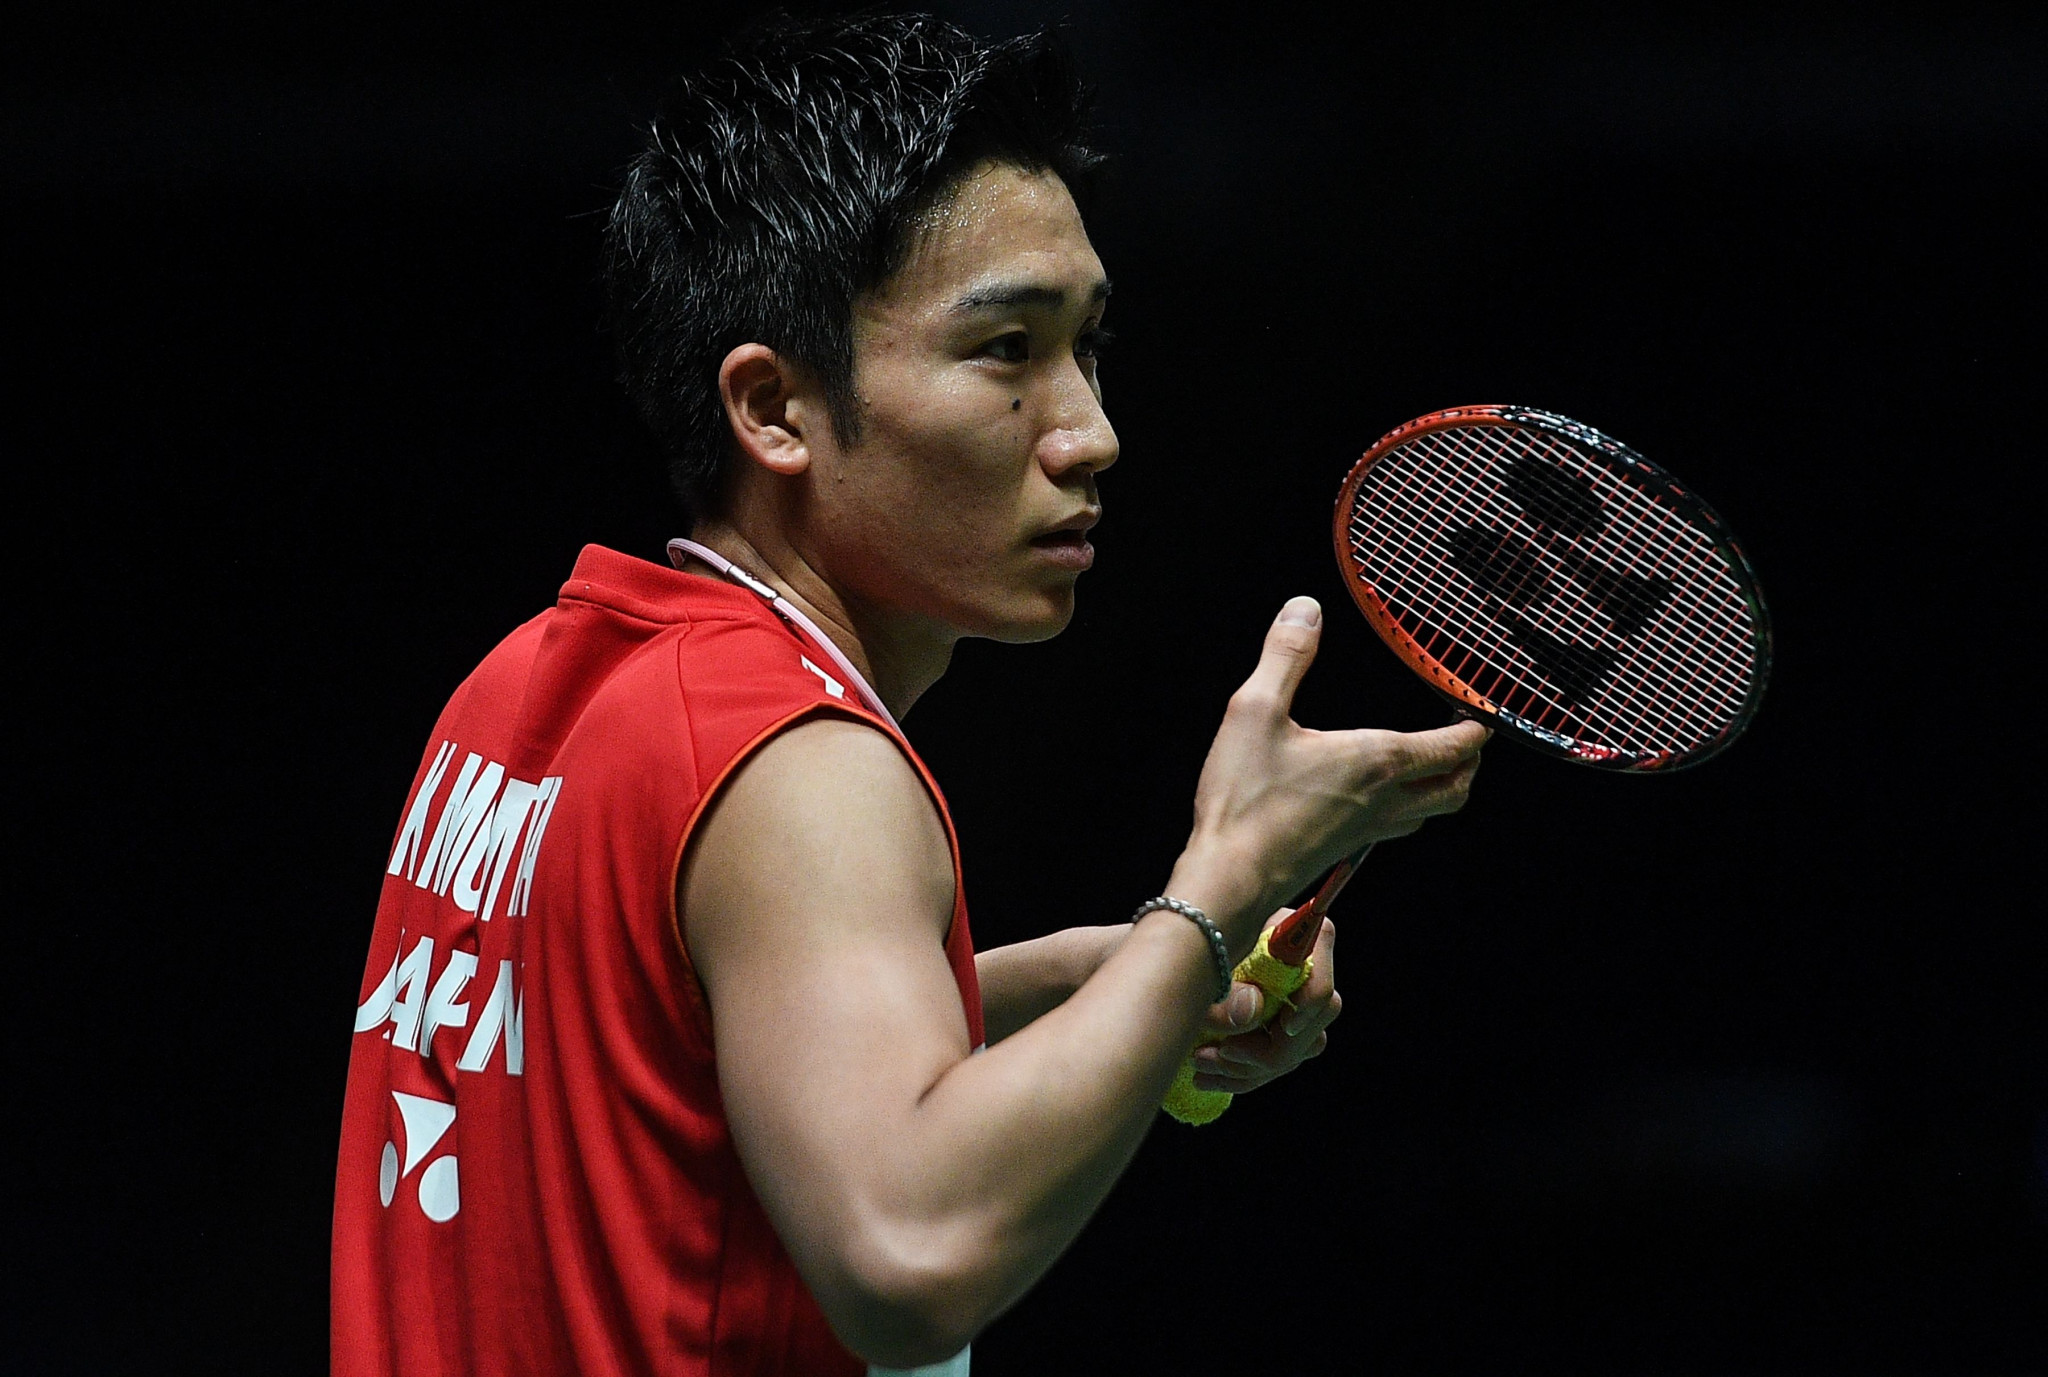 World number one badminton player Momota injured in crash that killed driver